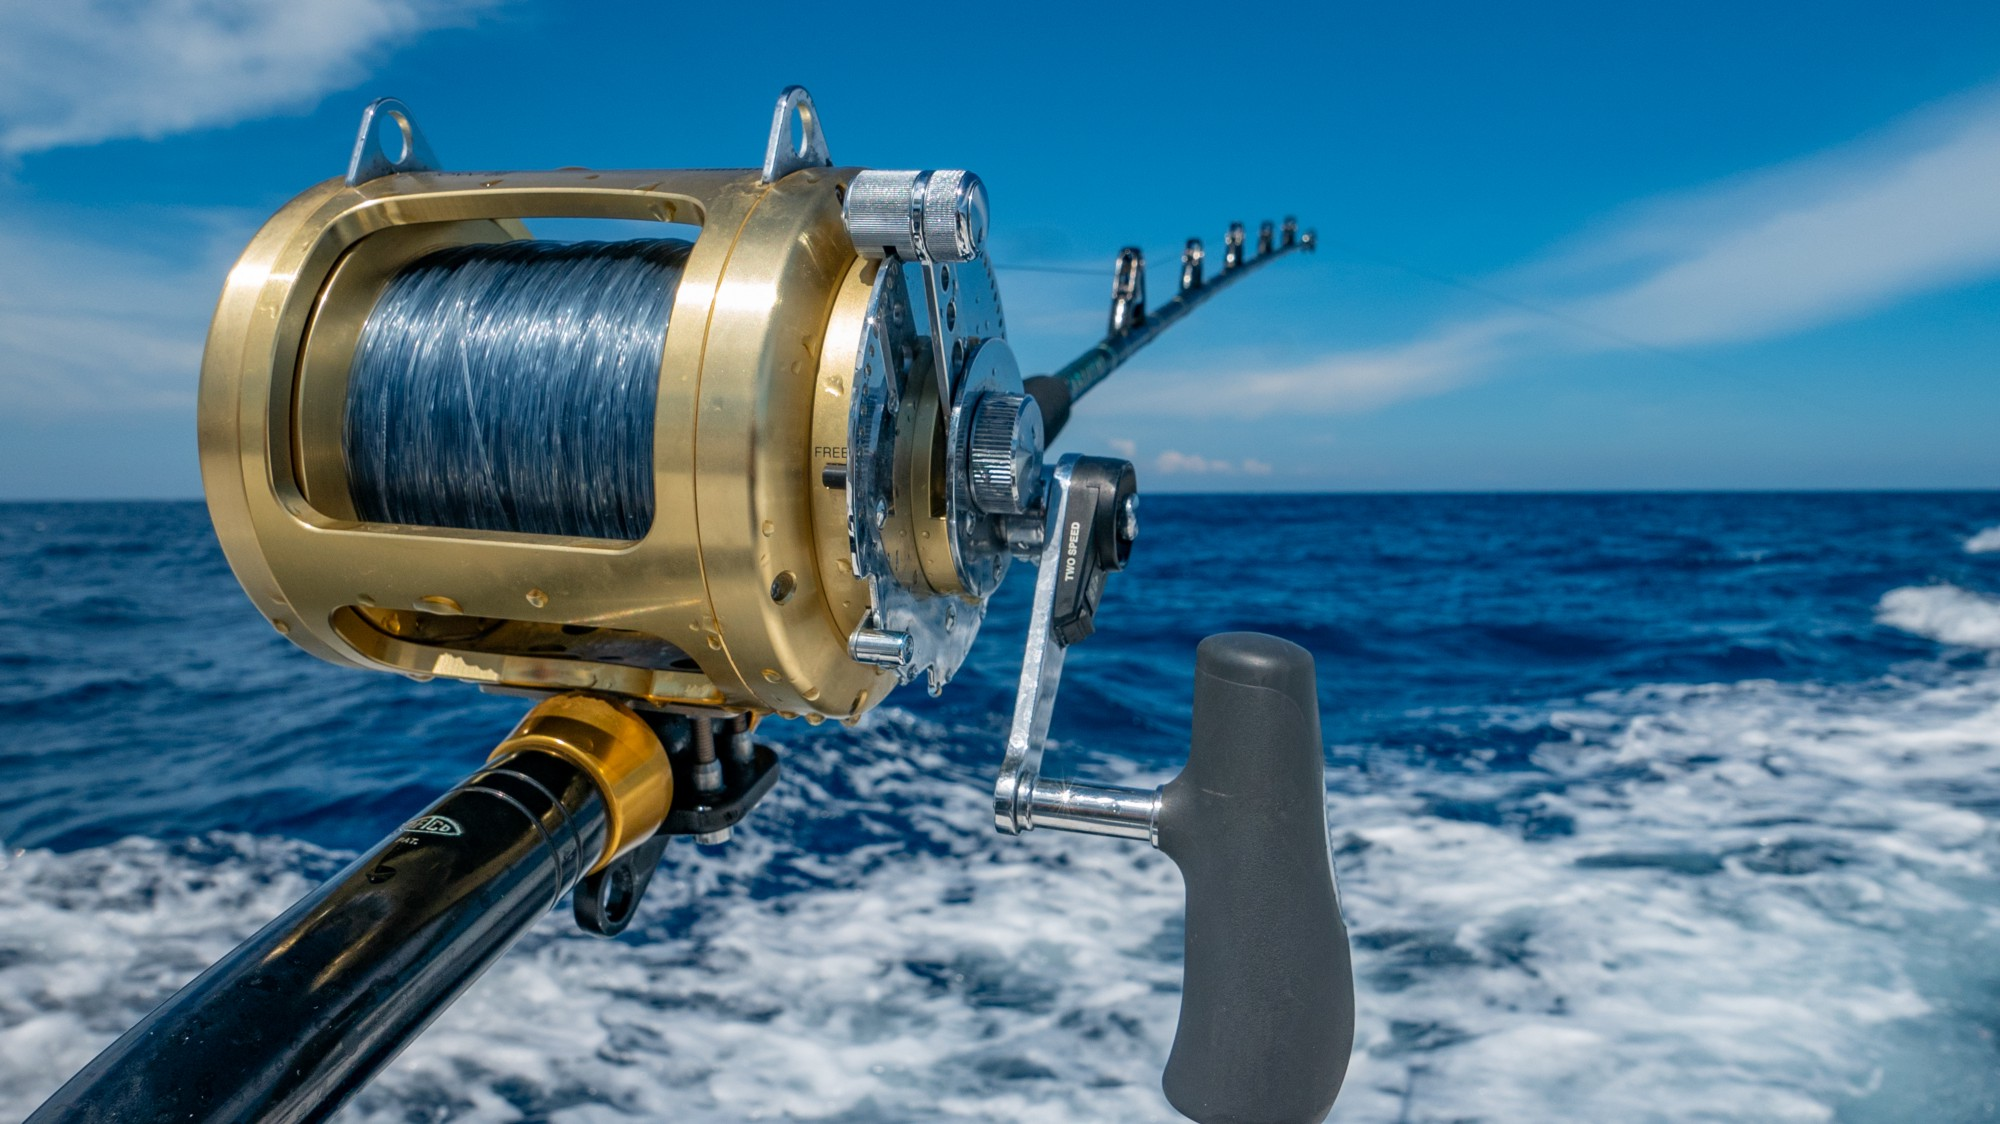 A fishing rod with a hook hanging over the back of a boat in the middle of the ocean